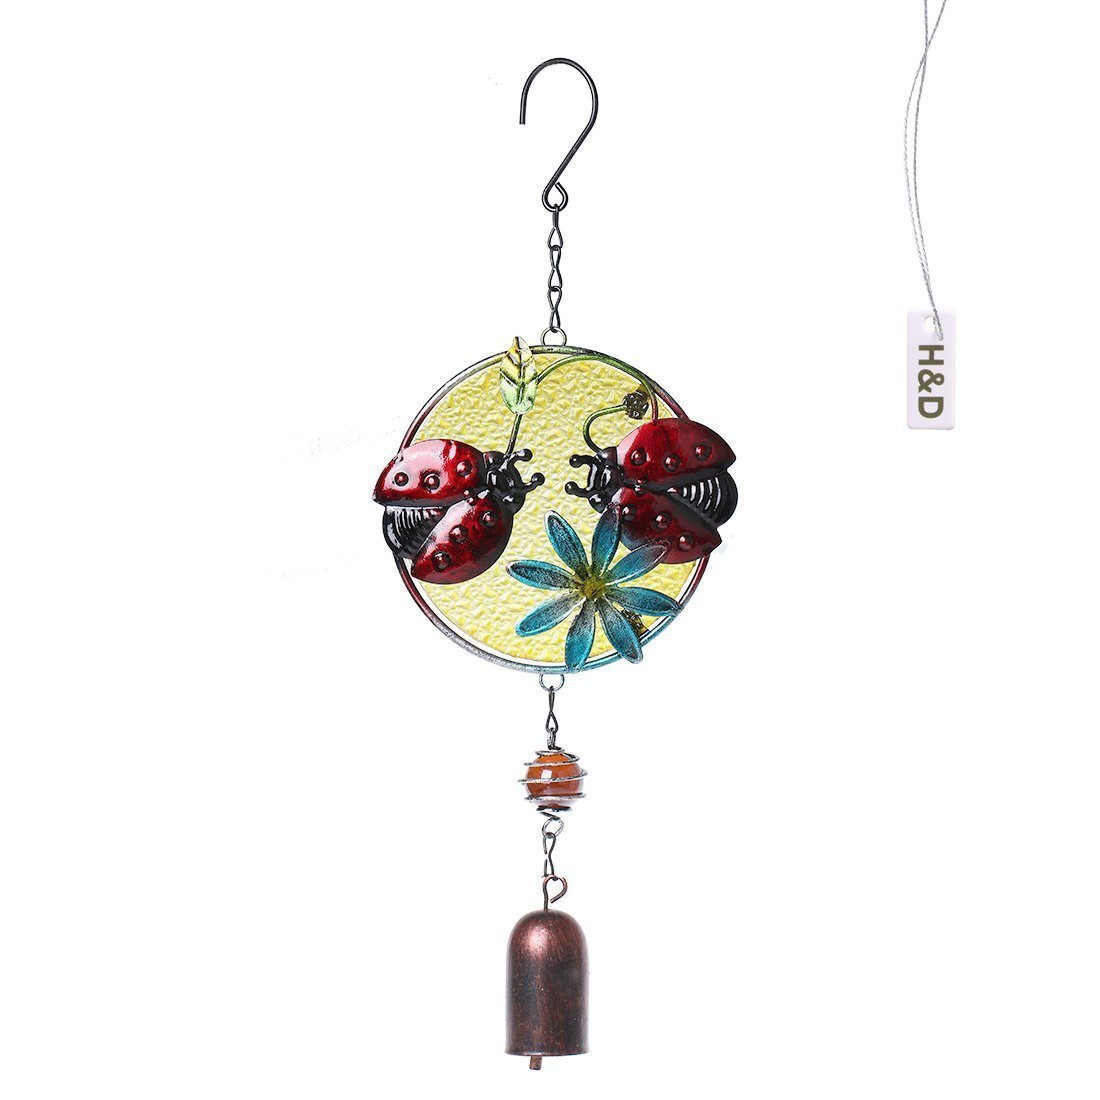 H&D Special Design Two Ladybug Garden Yard Metal Outdoor Living Wind Chimes Handcrafts Home Decoration